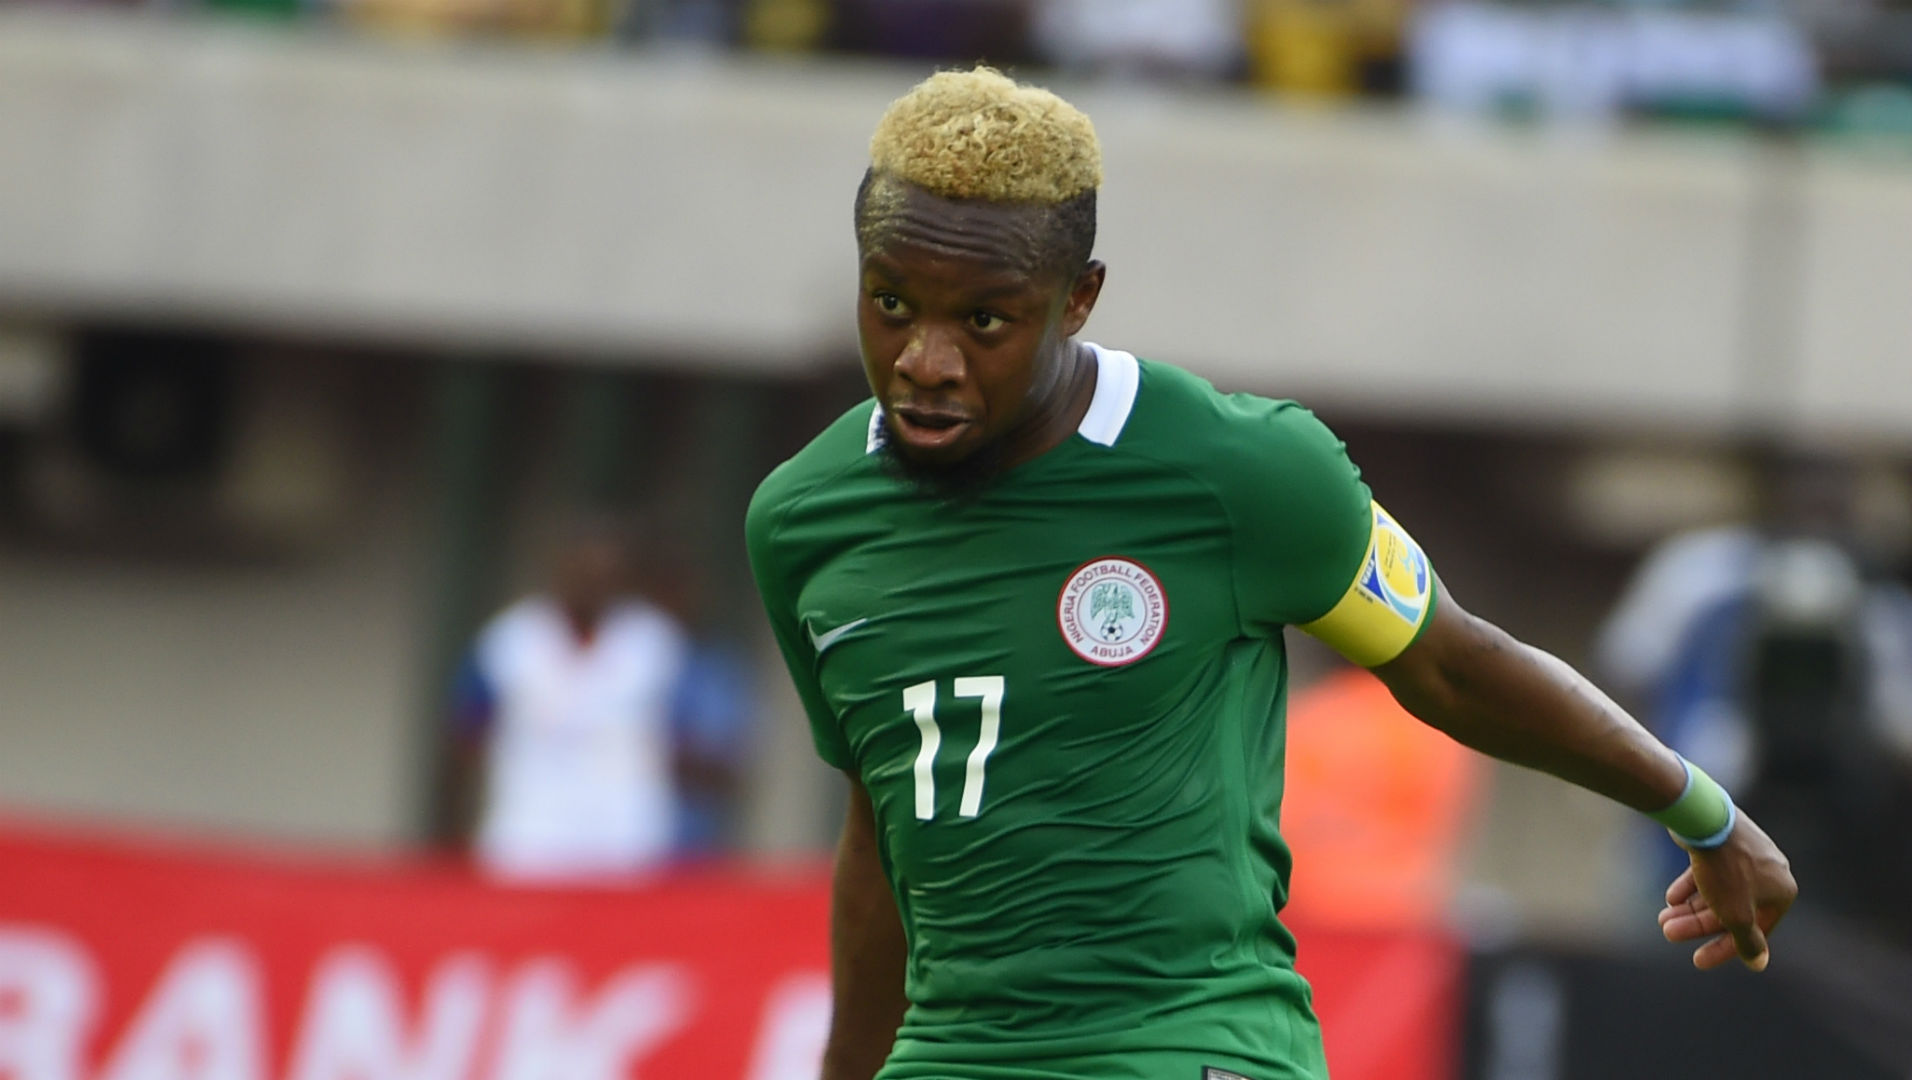 Ogenyi Onazi, Moses Simon out of Algeria & Argentina games, replacement named